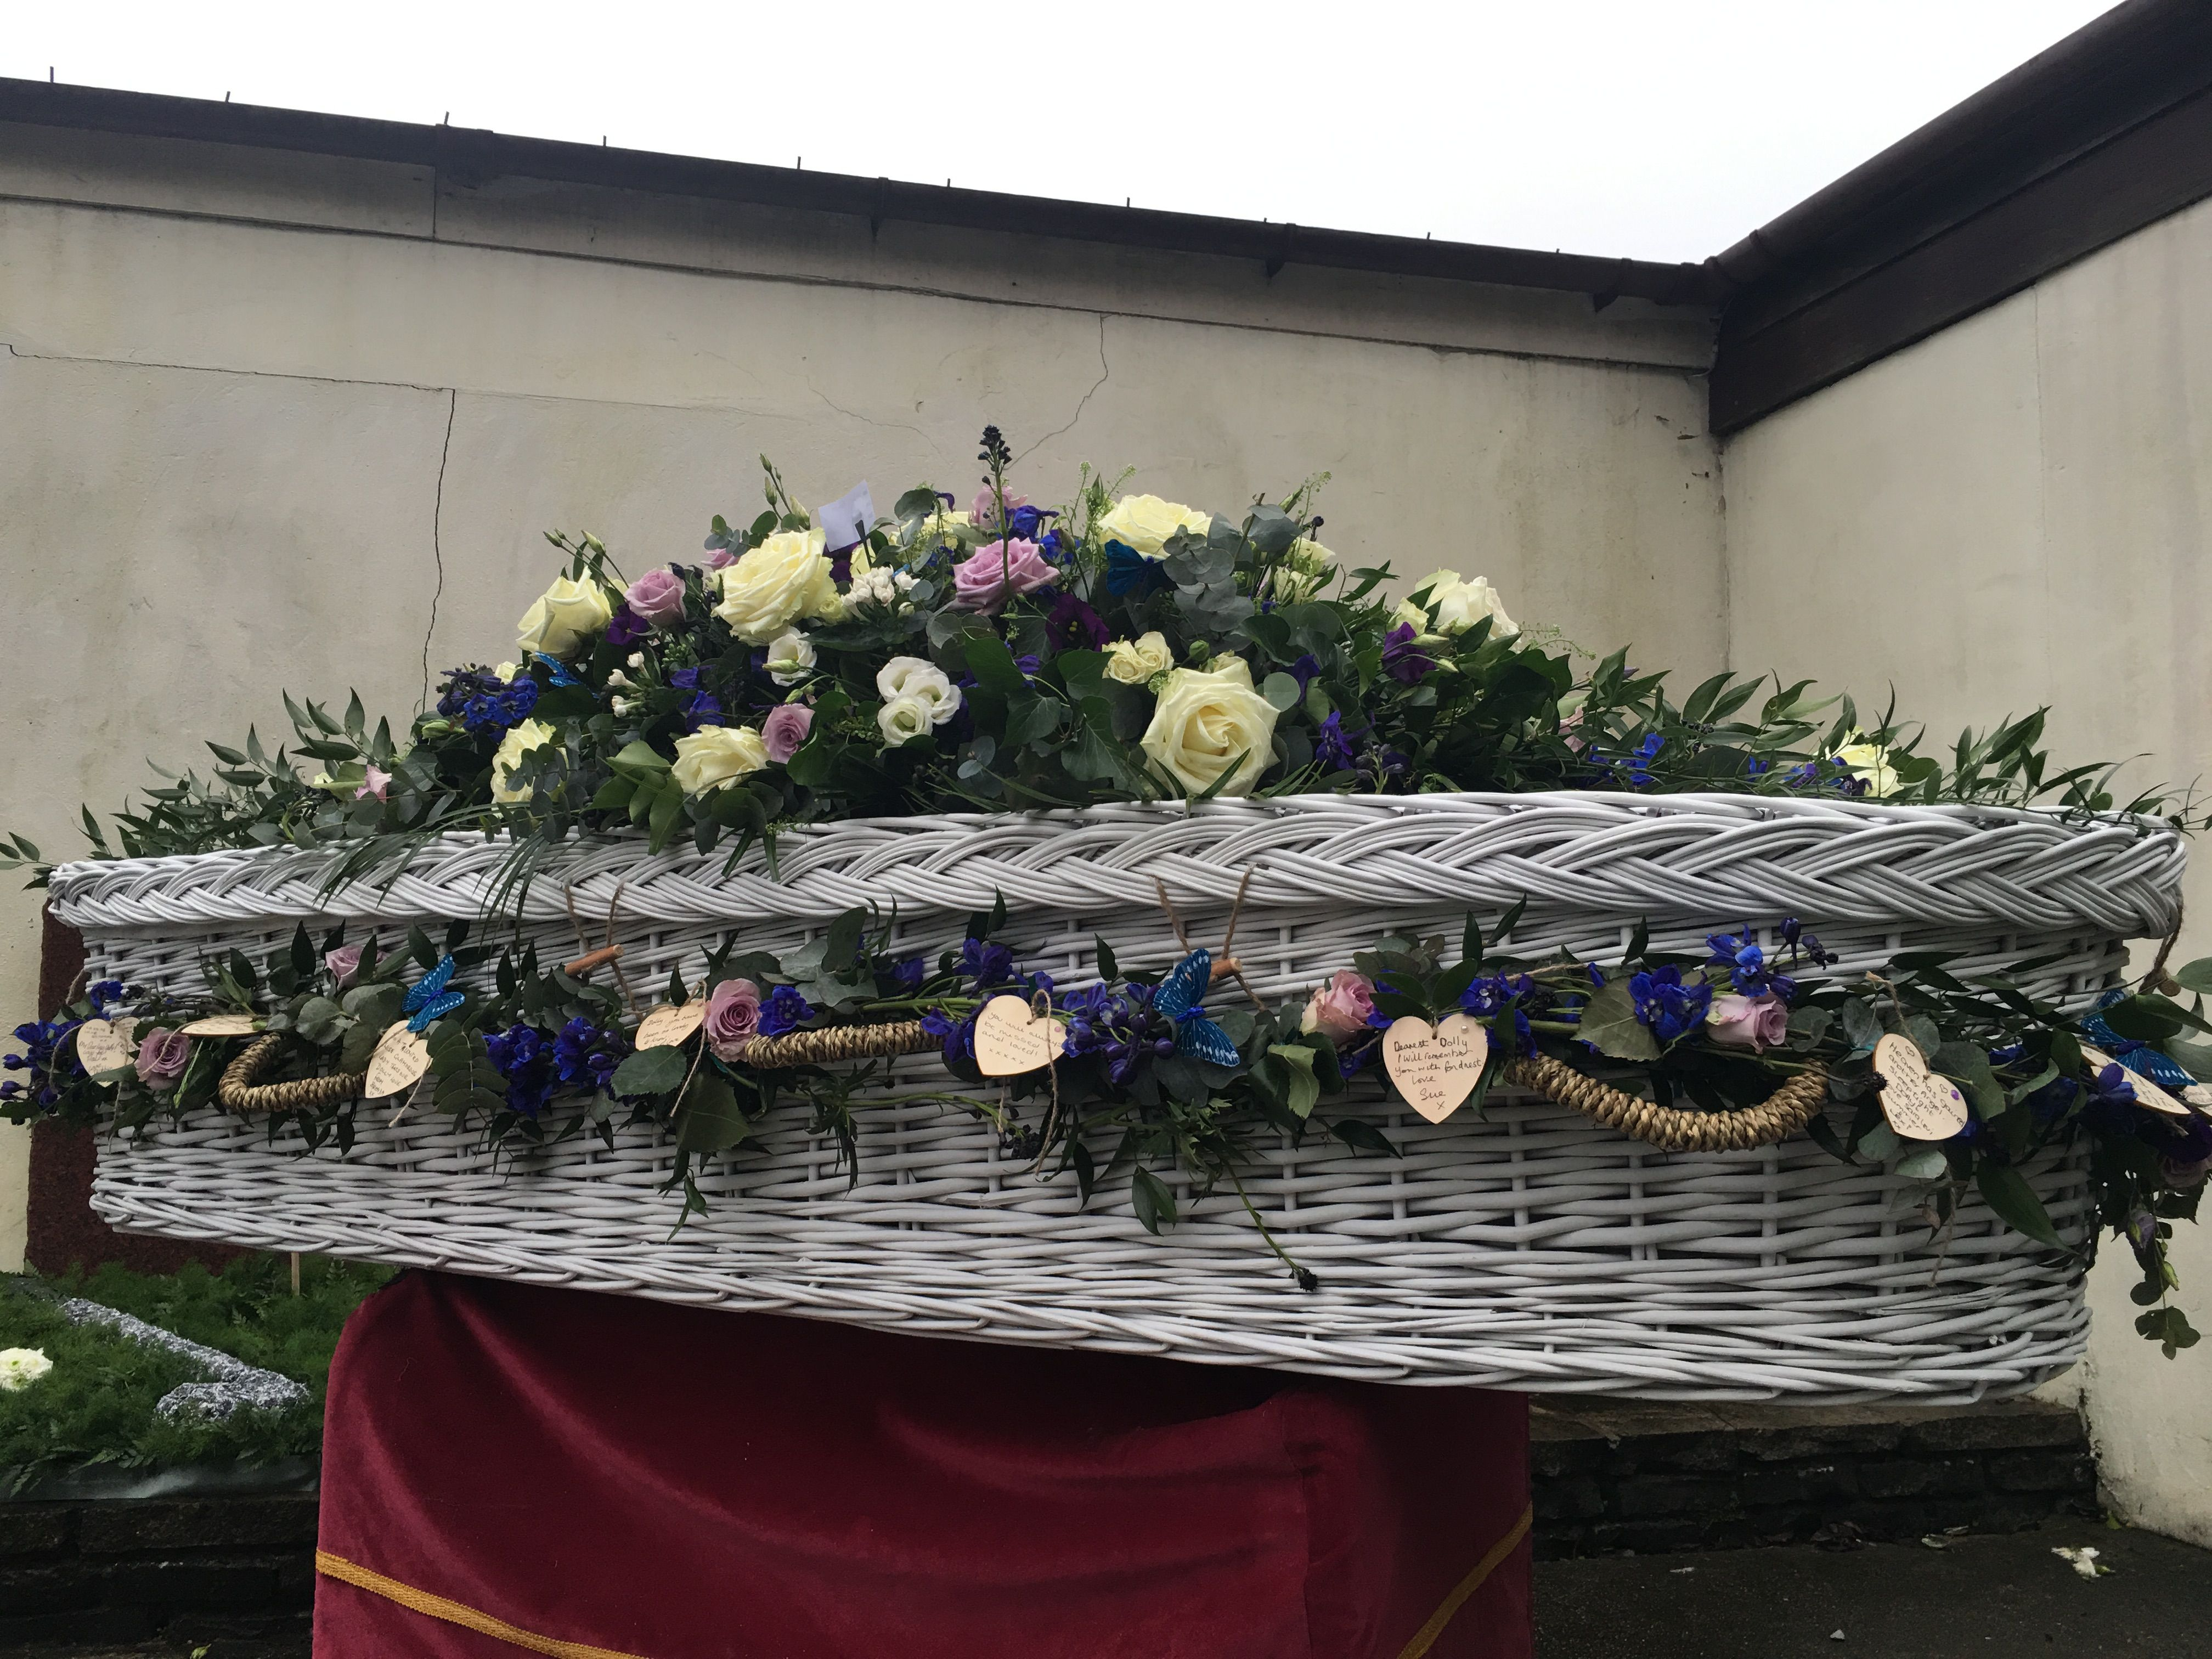 Funeral flowers wicker coffin garland funeral flower tributes funeral flowers wicker coffin garland dhlflorist Choice Image